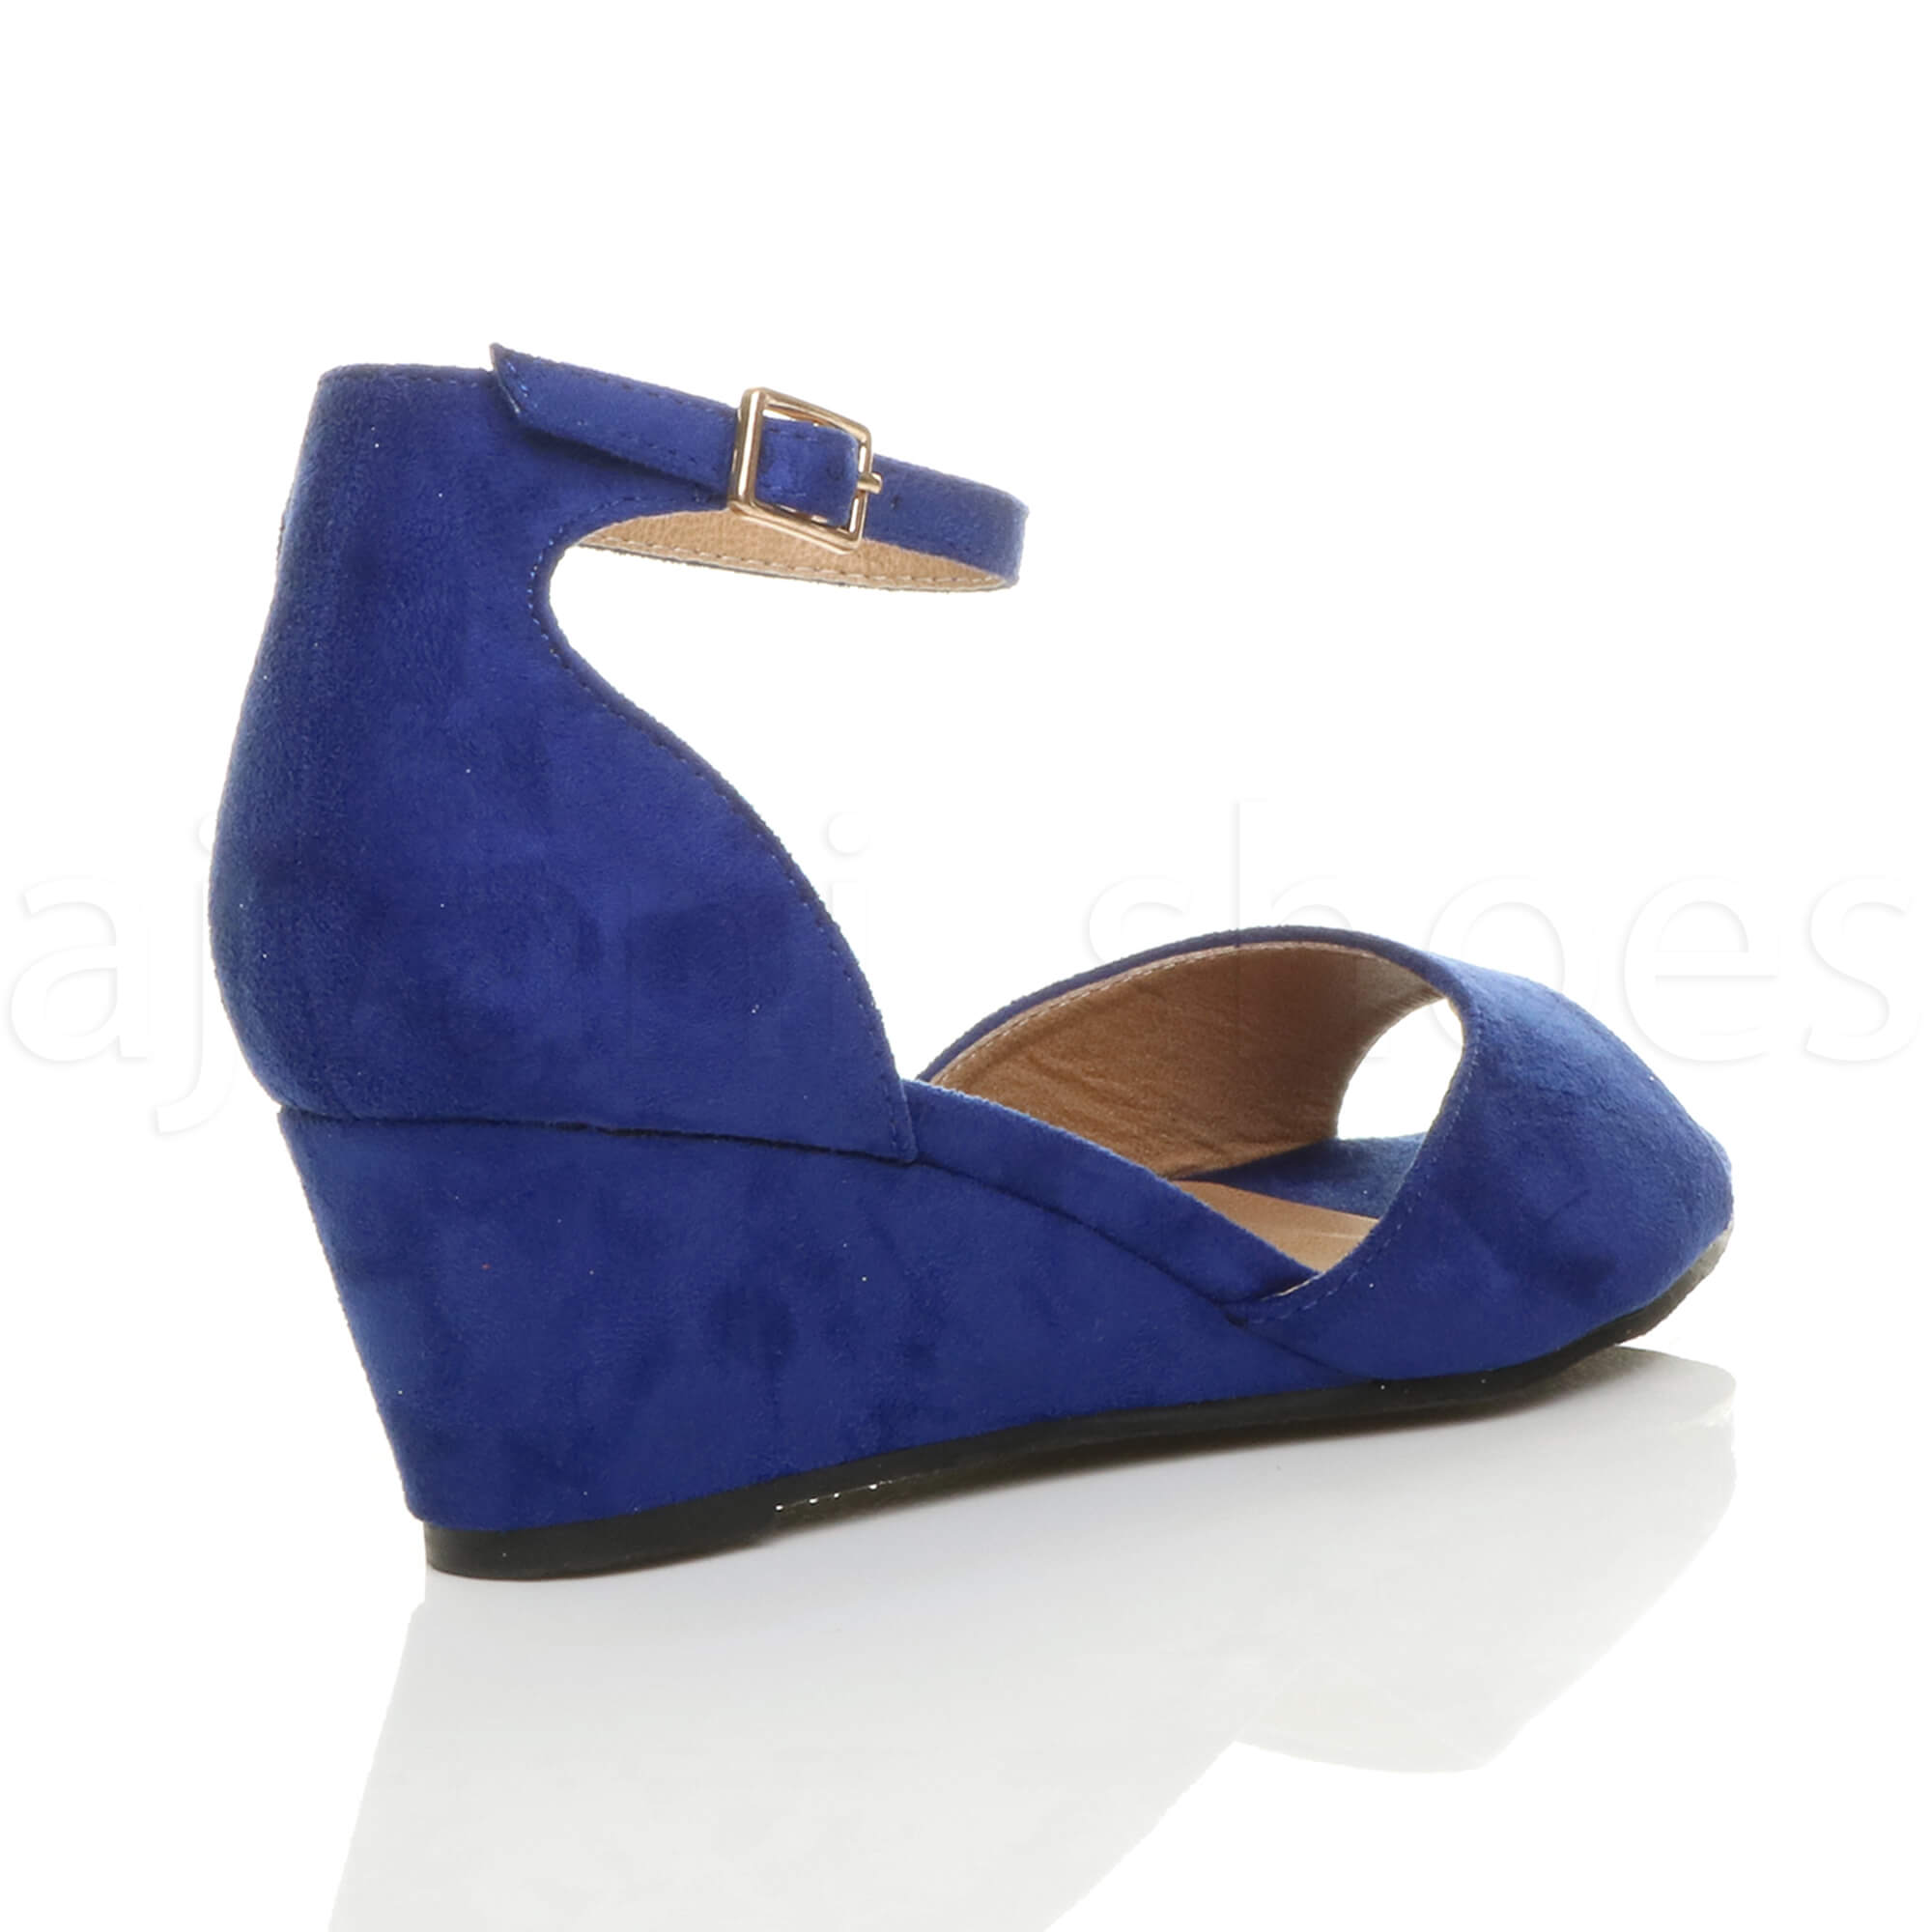 WOMENS-LADIES-LOW-MID-WEDGE-HEEL-ANKLE-STRAP-SMART-CASUAL-EVENING-SANDALS-SIZE thumbnail 29